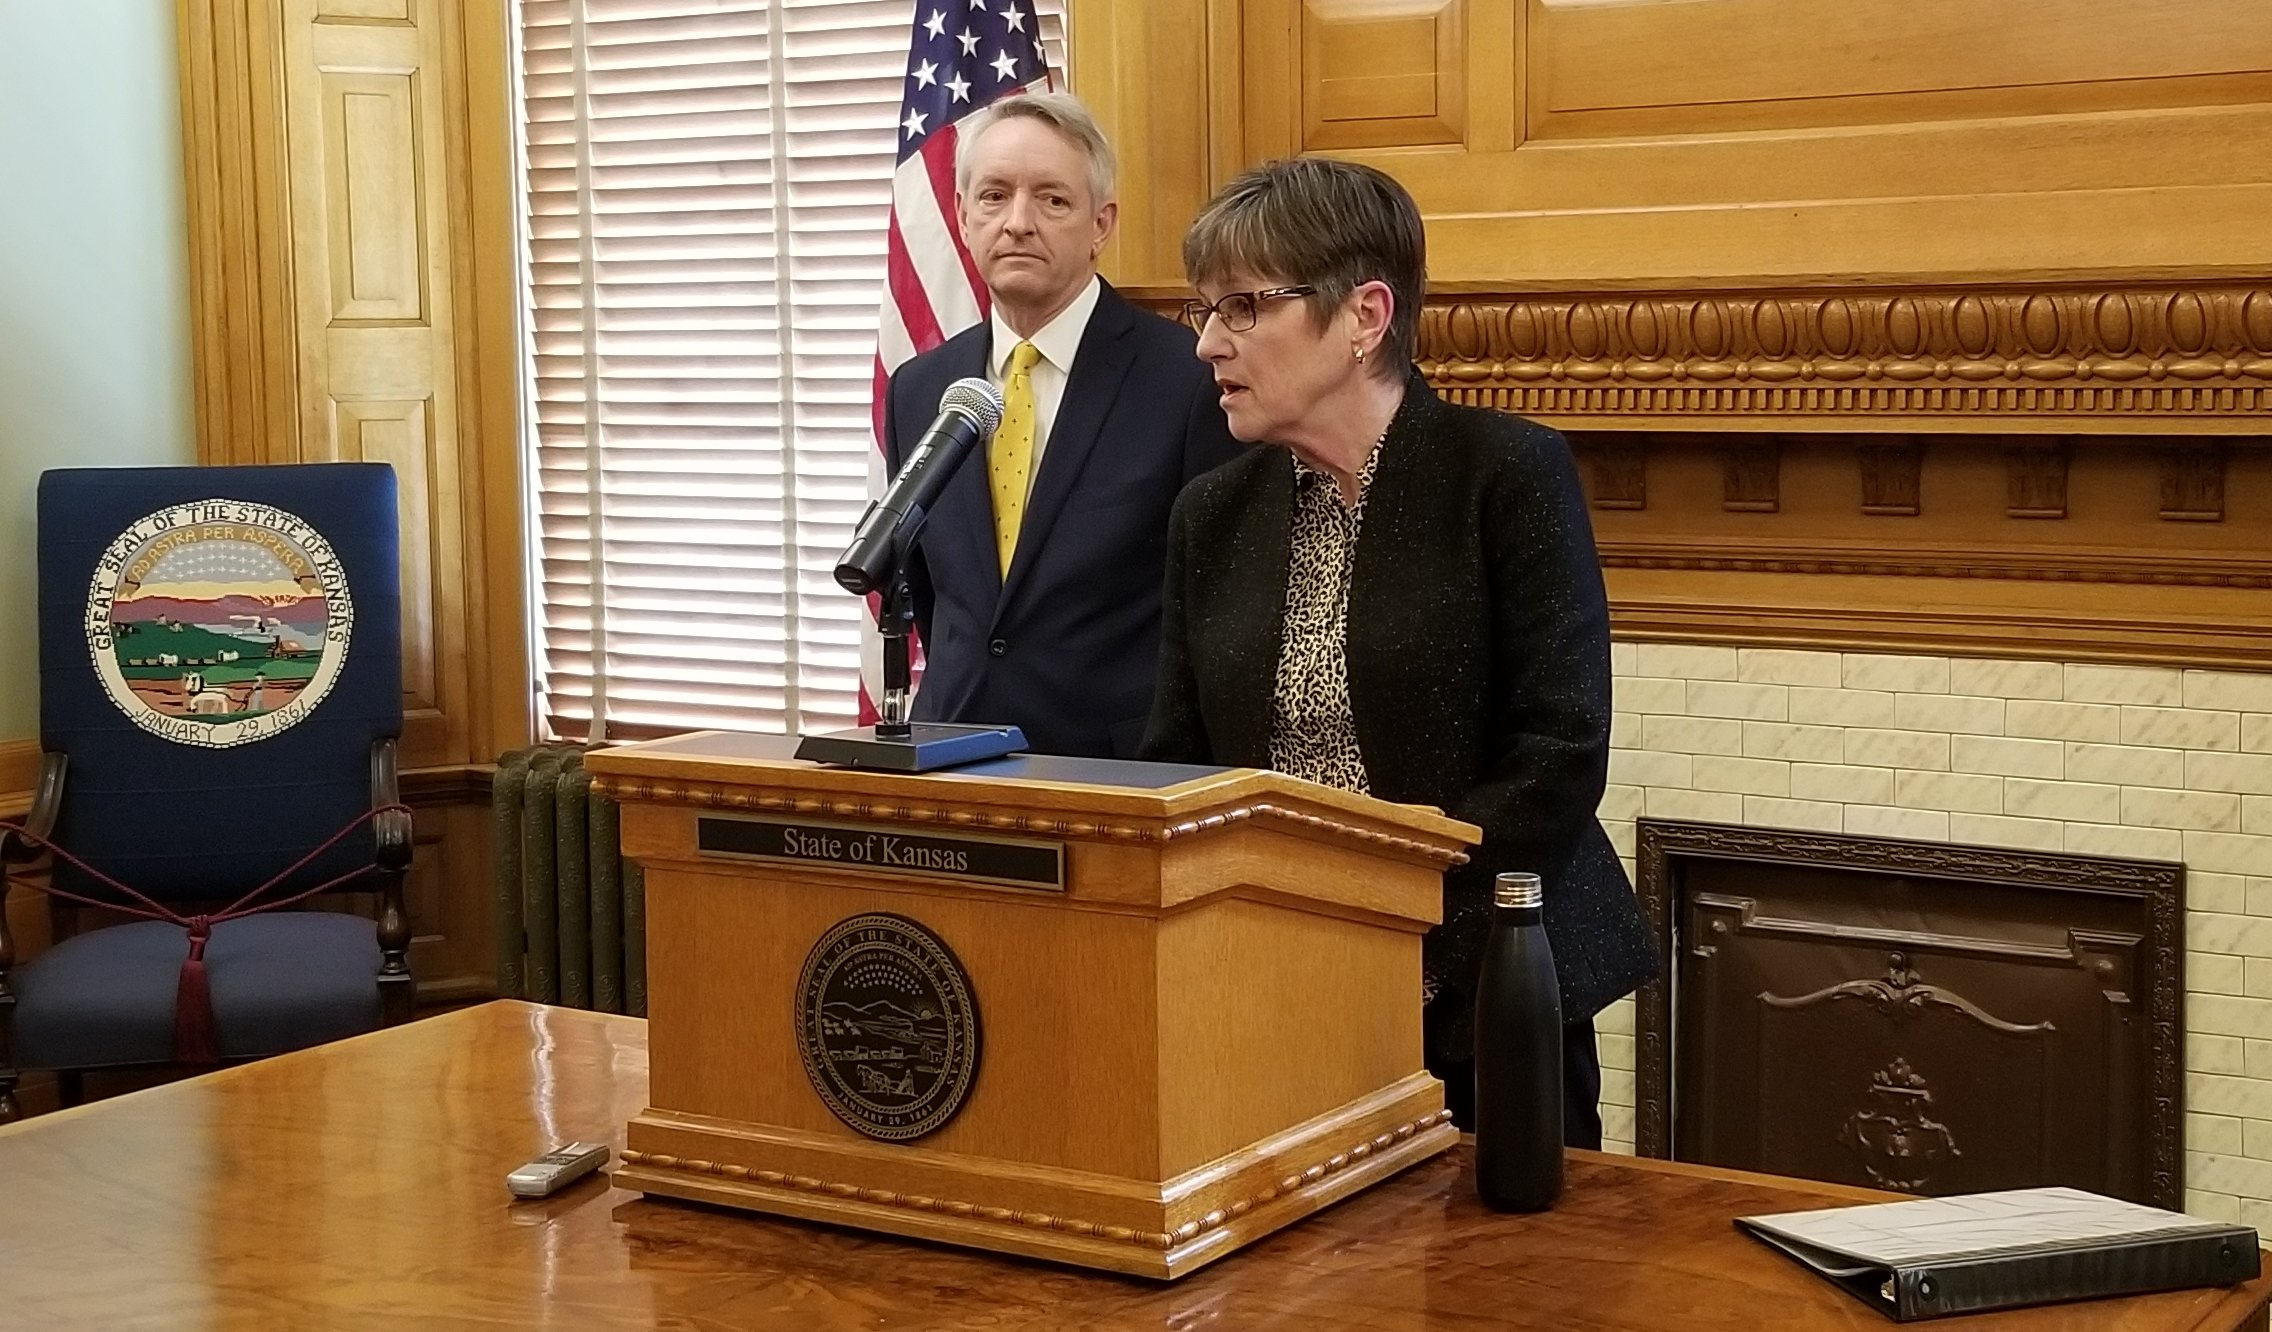 Gov. Laura Kelly and Judge Jack earlier this year. (Photo by Stephen Koranda)